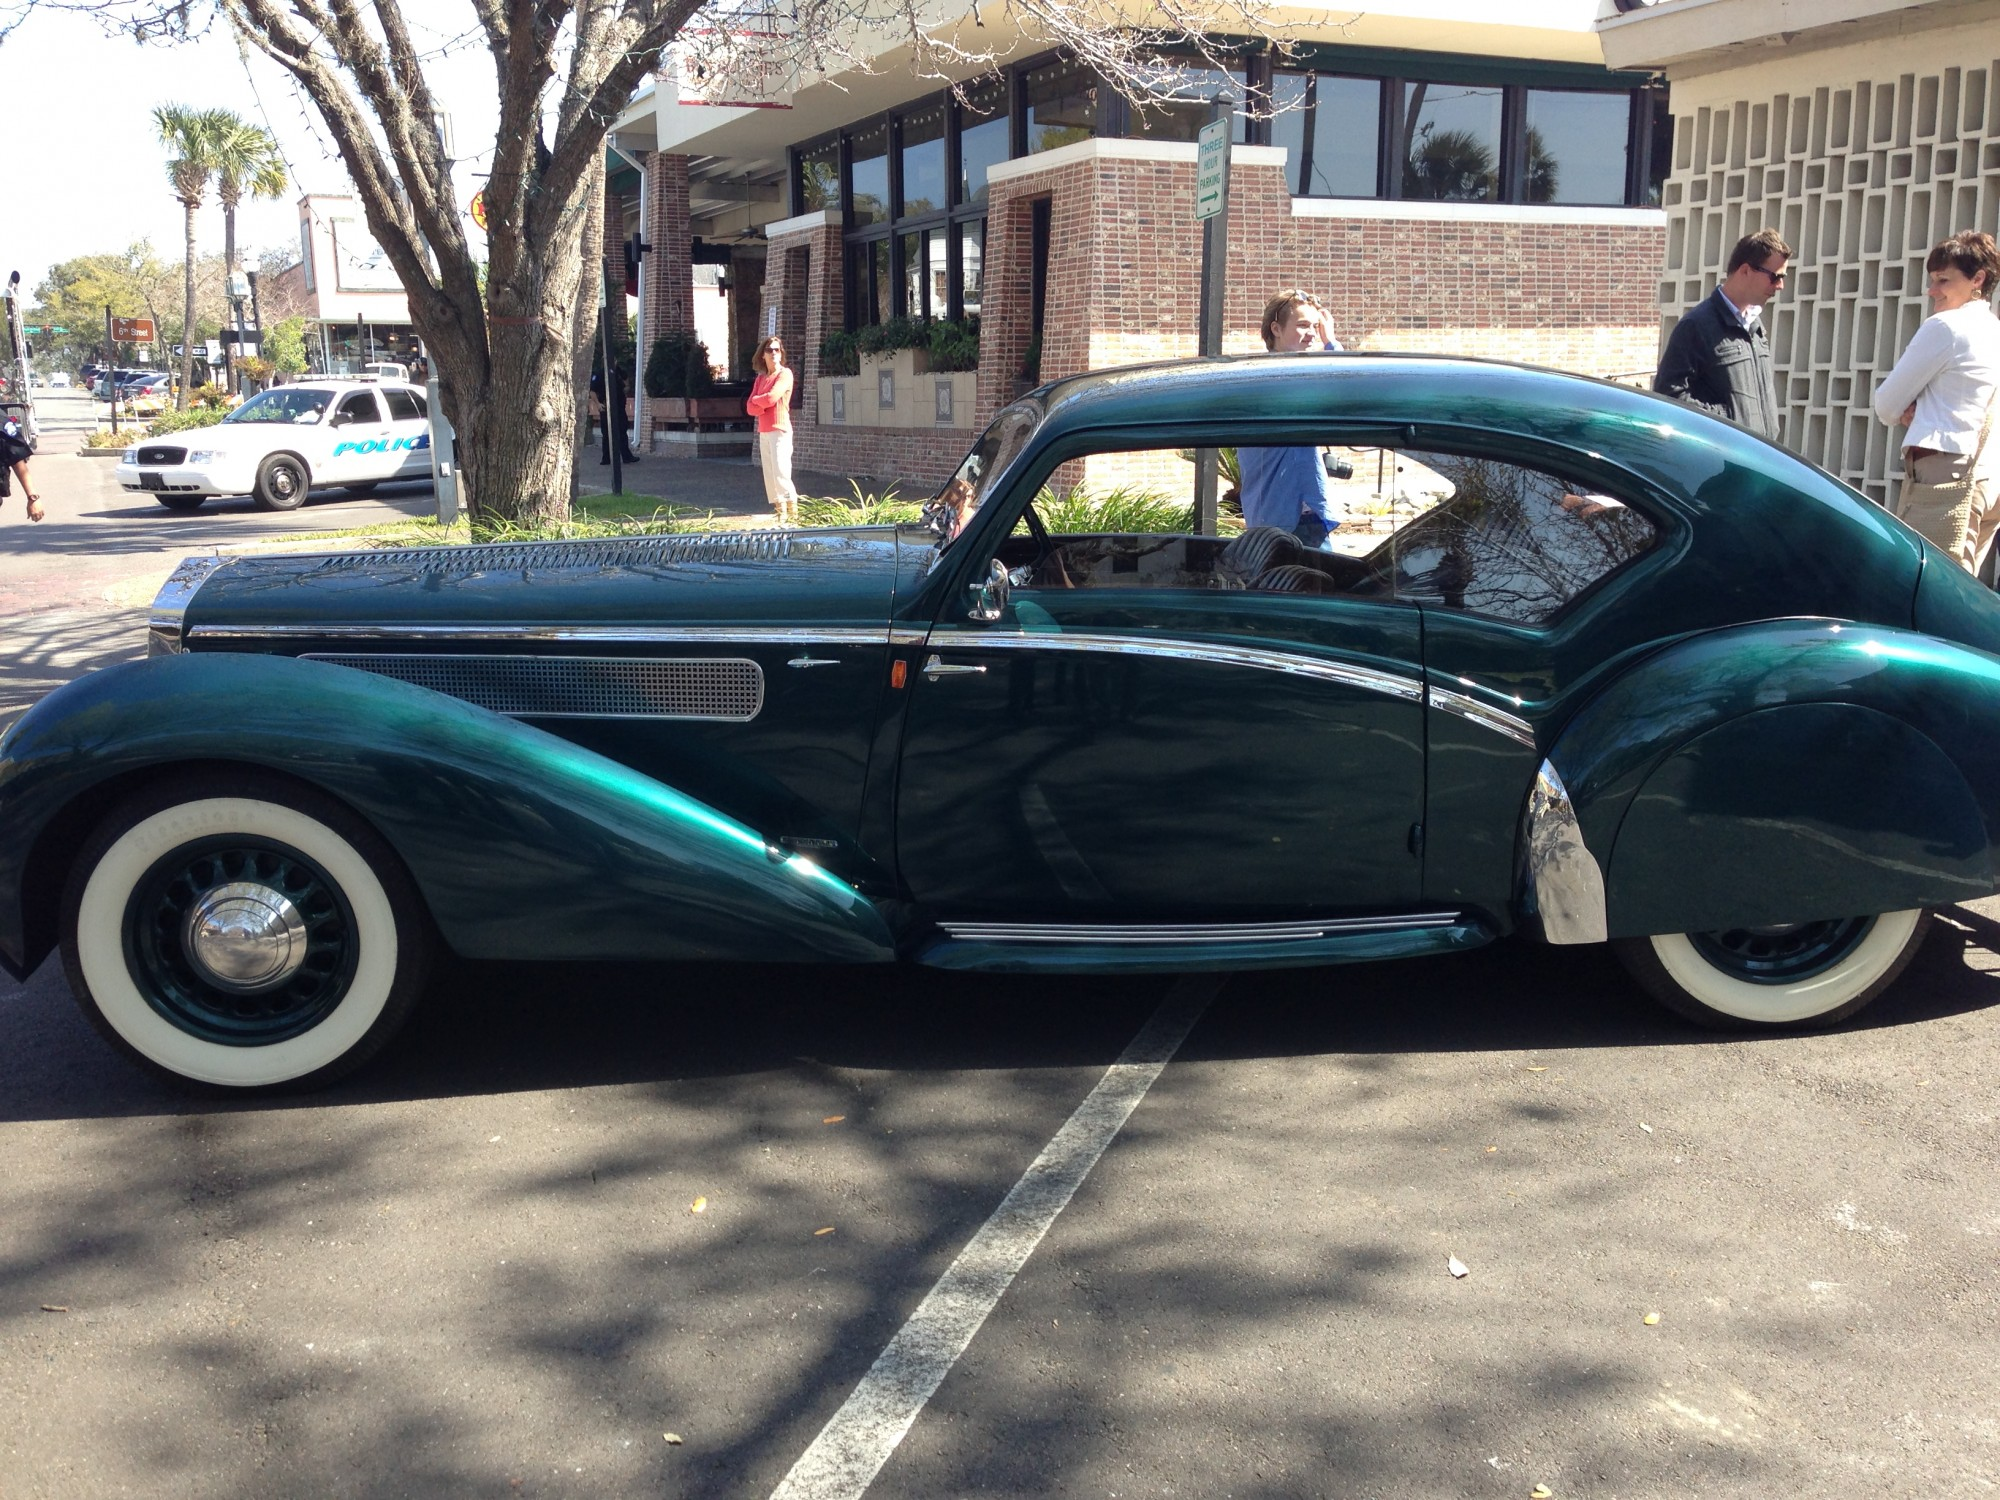 Car Show Revs Up On The Island Amelia Island Blue Heron Inn - Amelia car show